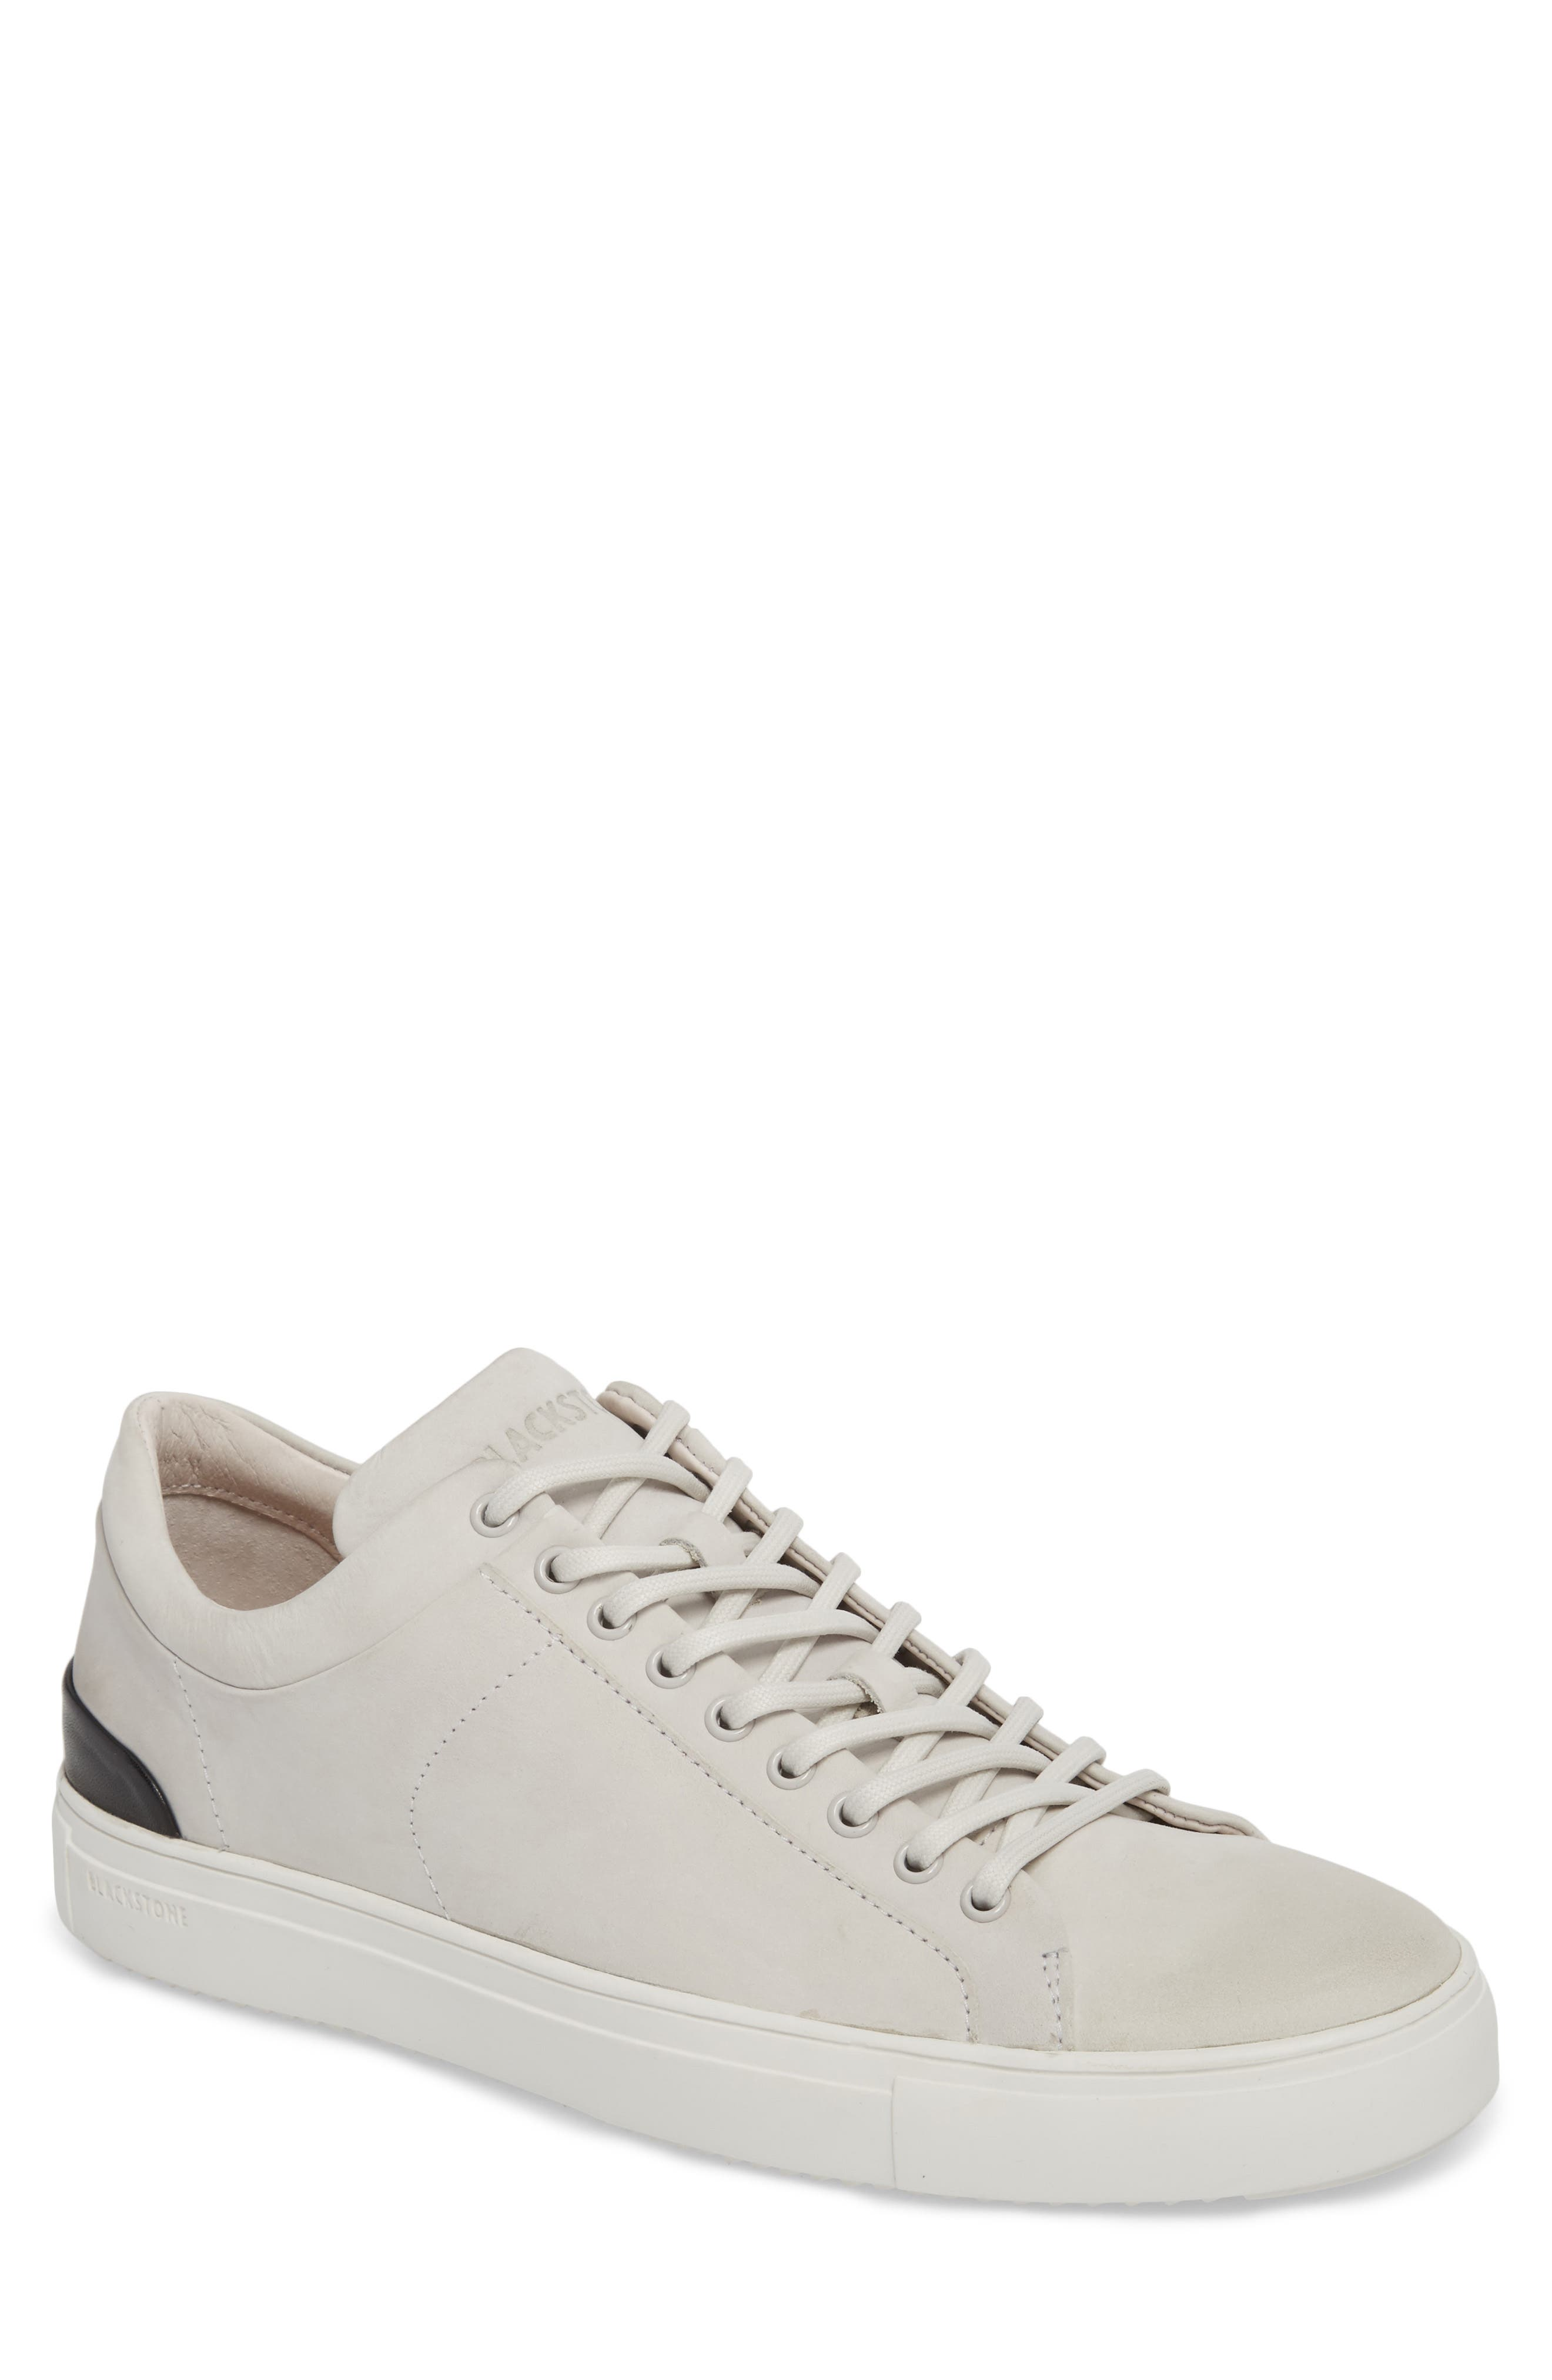 PM56 Low Top Sneaker,                             Main thumbnail 1, color,                             Wind Chime Leather